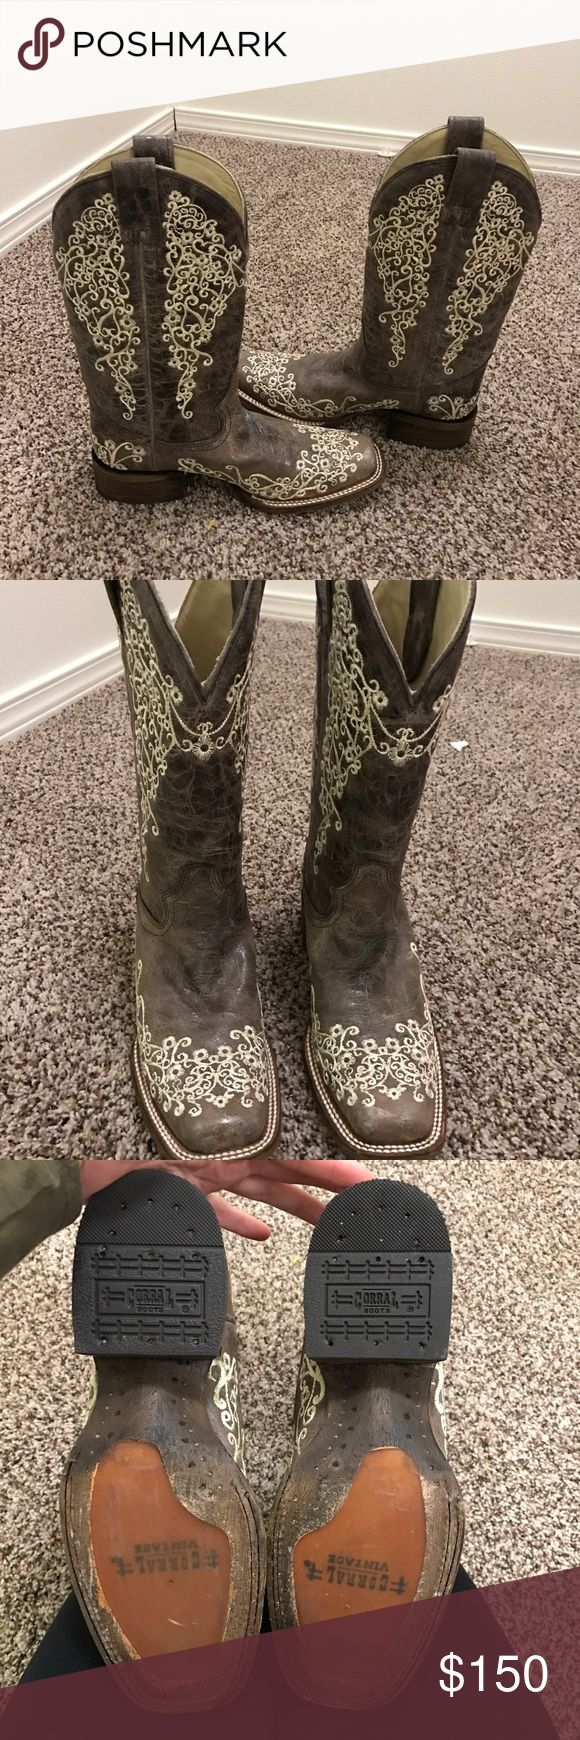 Corral boots Corral boots in excellent condition. They have been worn once for about 2 hours to meet my husband at the airport. Size 7.5 and they run true to size. corral Shoes Heeled Boots